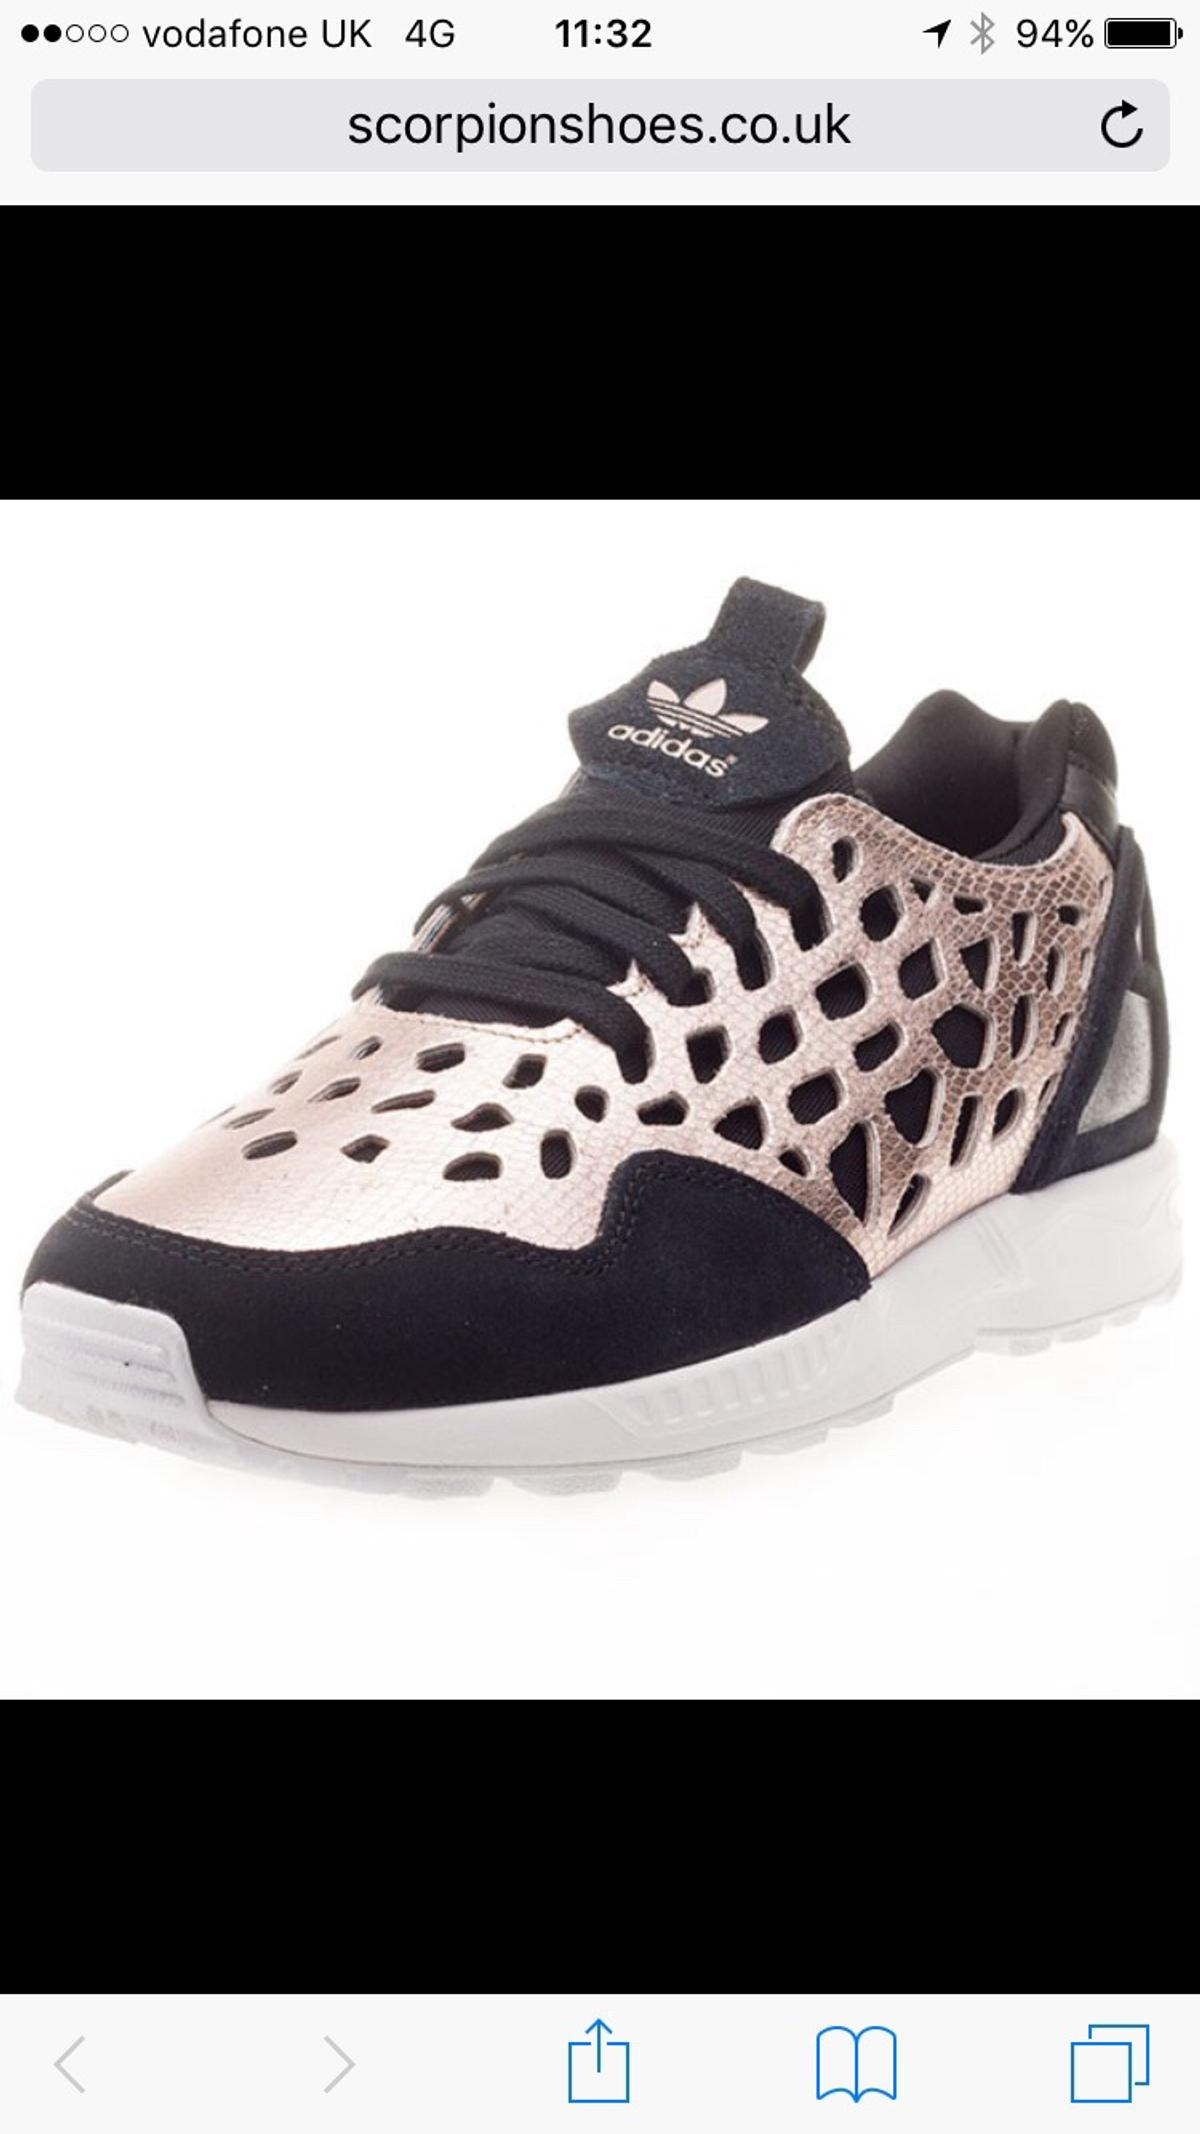 47fc33520 Adidas ZX Flux Torsion Trainers in Black Gold in G41 Glasgow for ...